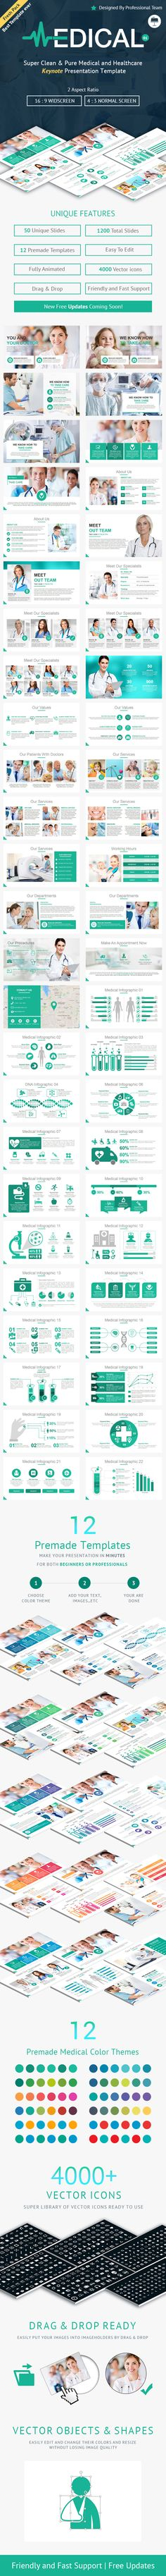 Asthma medical powerpoint template free lung powerpoint medical and healthcare powerpoint presentation template by rojdark find what you need with our super creative presentation collection medical and healthcare toneelgroepblik Choice Image